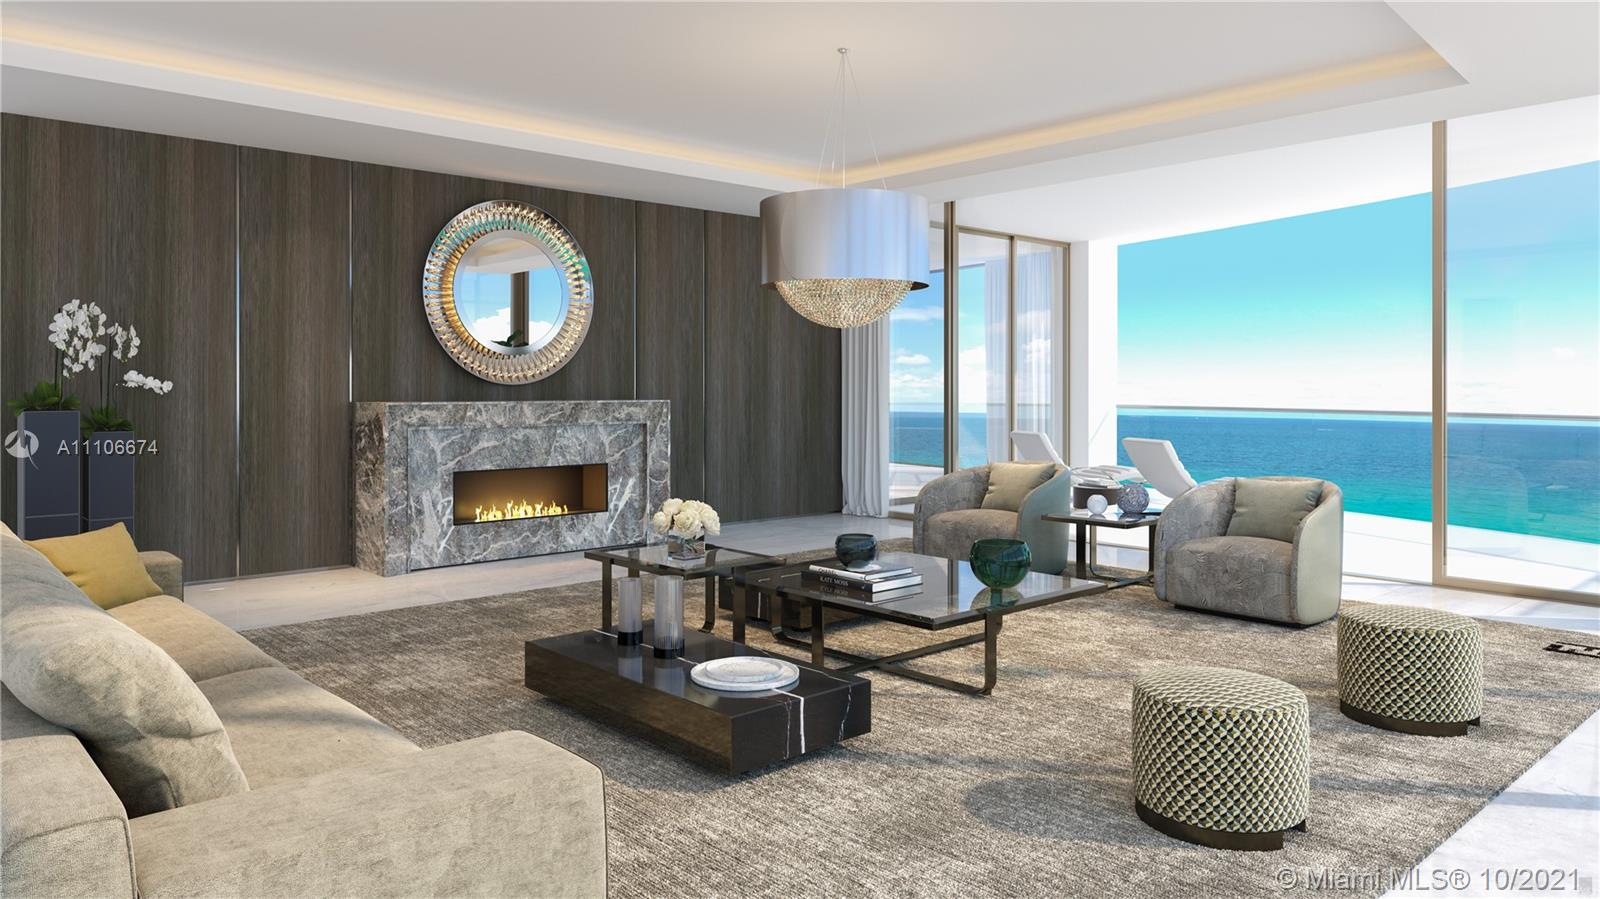 17901 Collins Ave, Unit #4301 Luxury Real Estate